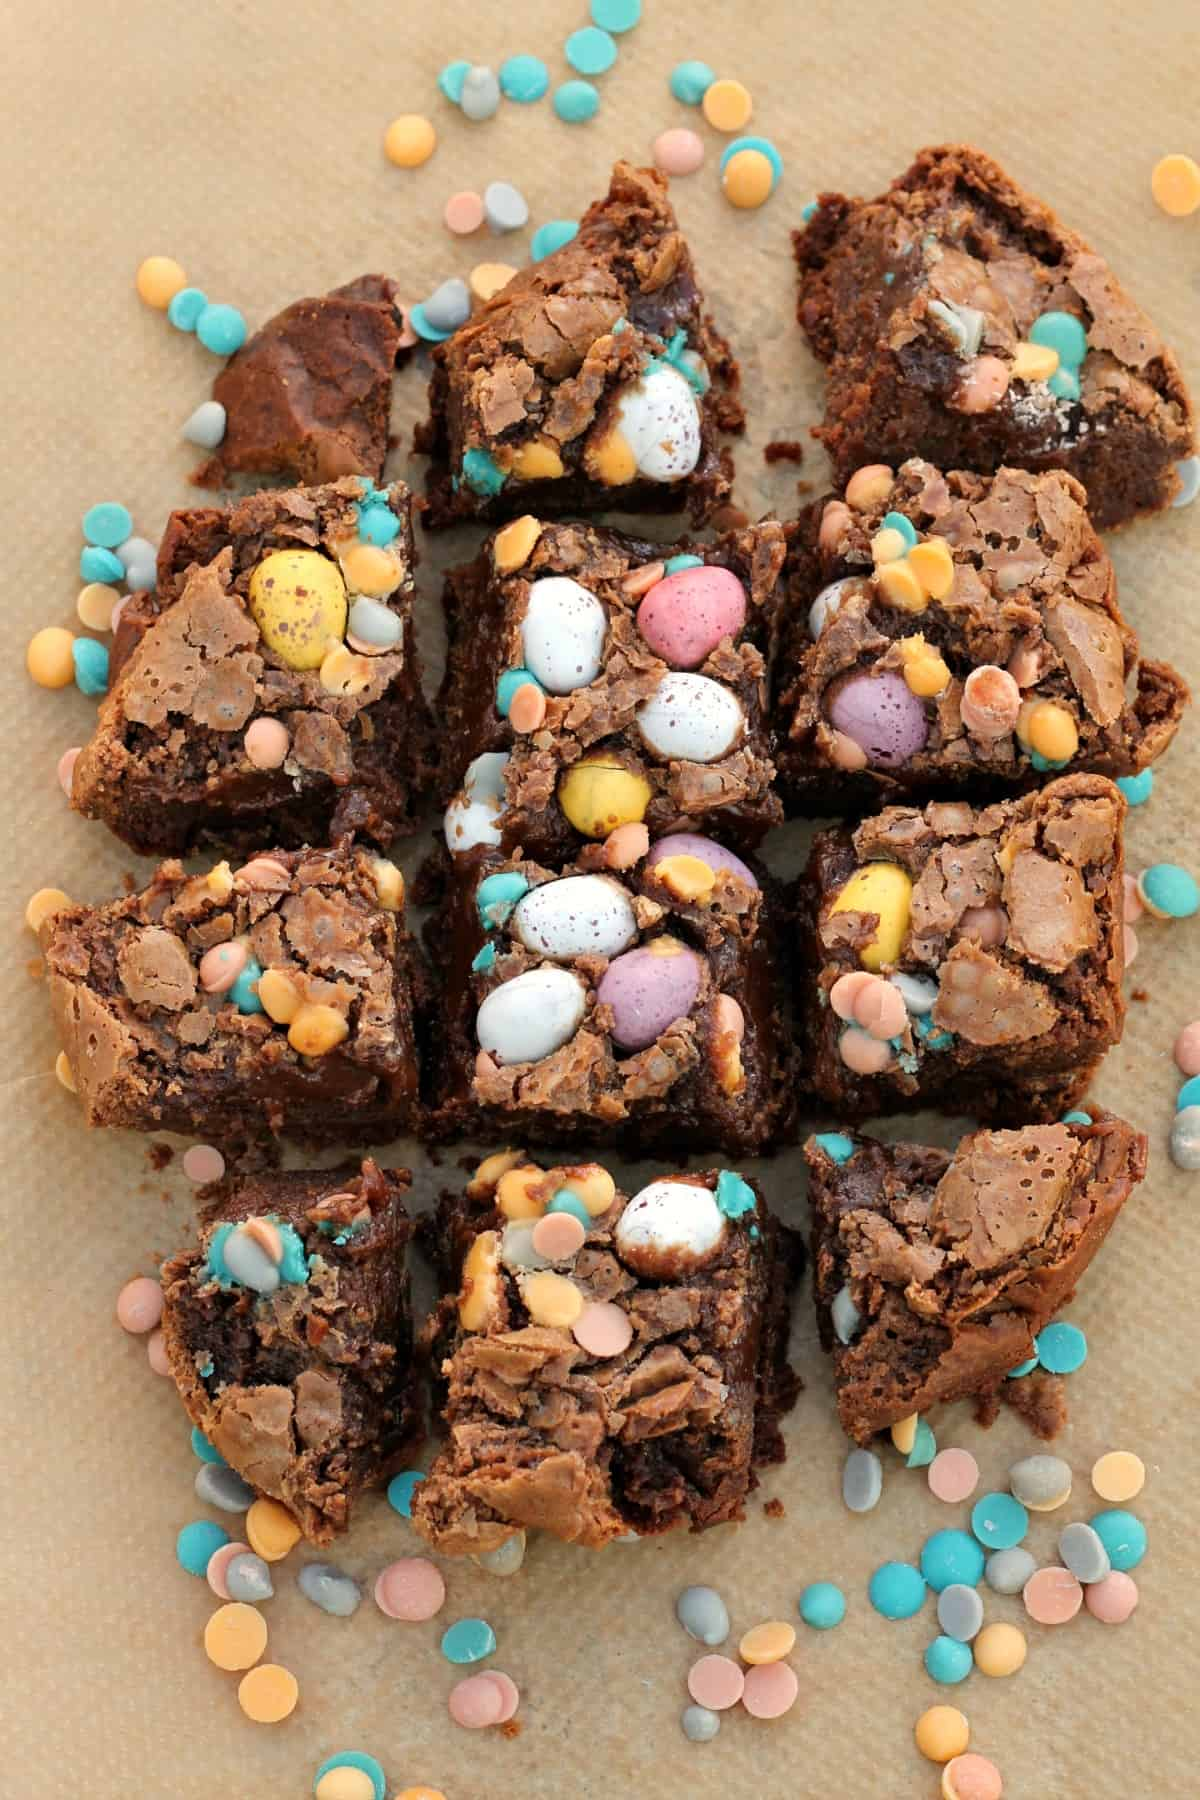 Brownies topped with Mini Eggs in squares.